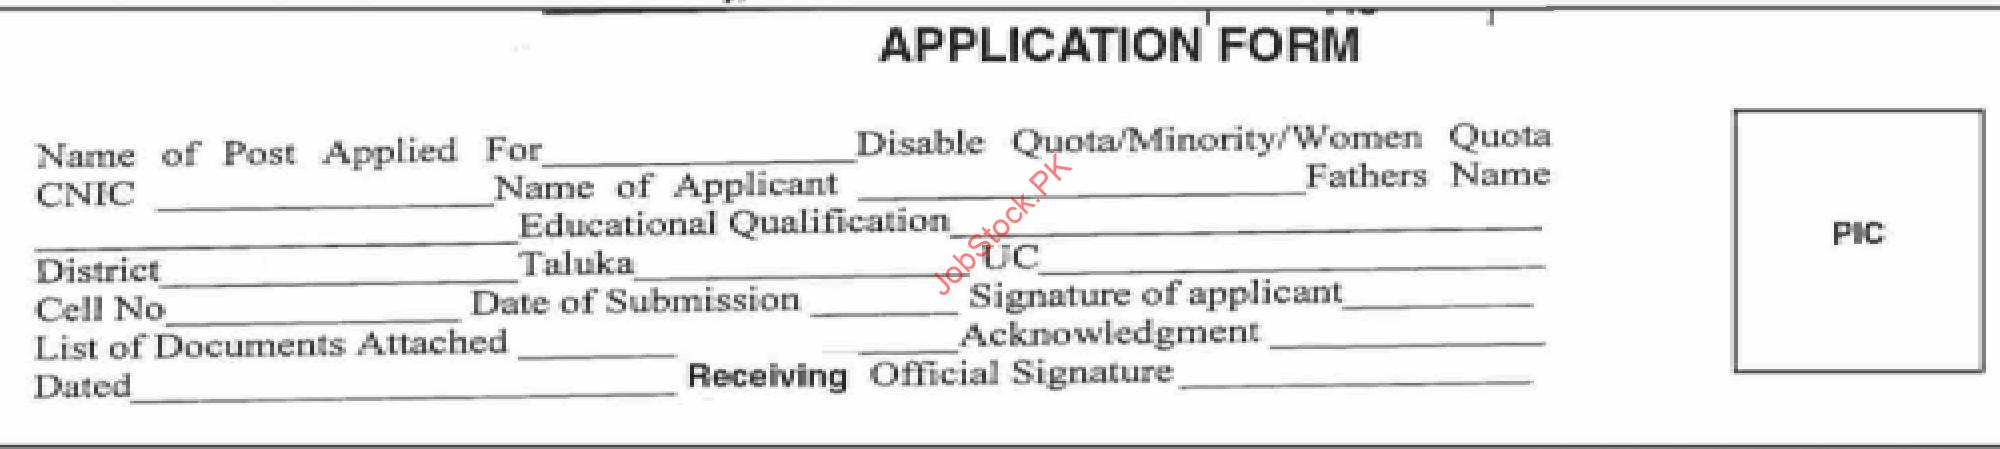 Education And Literacy Department Sindh Job Application Form 2021